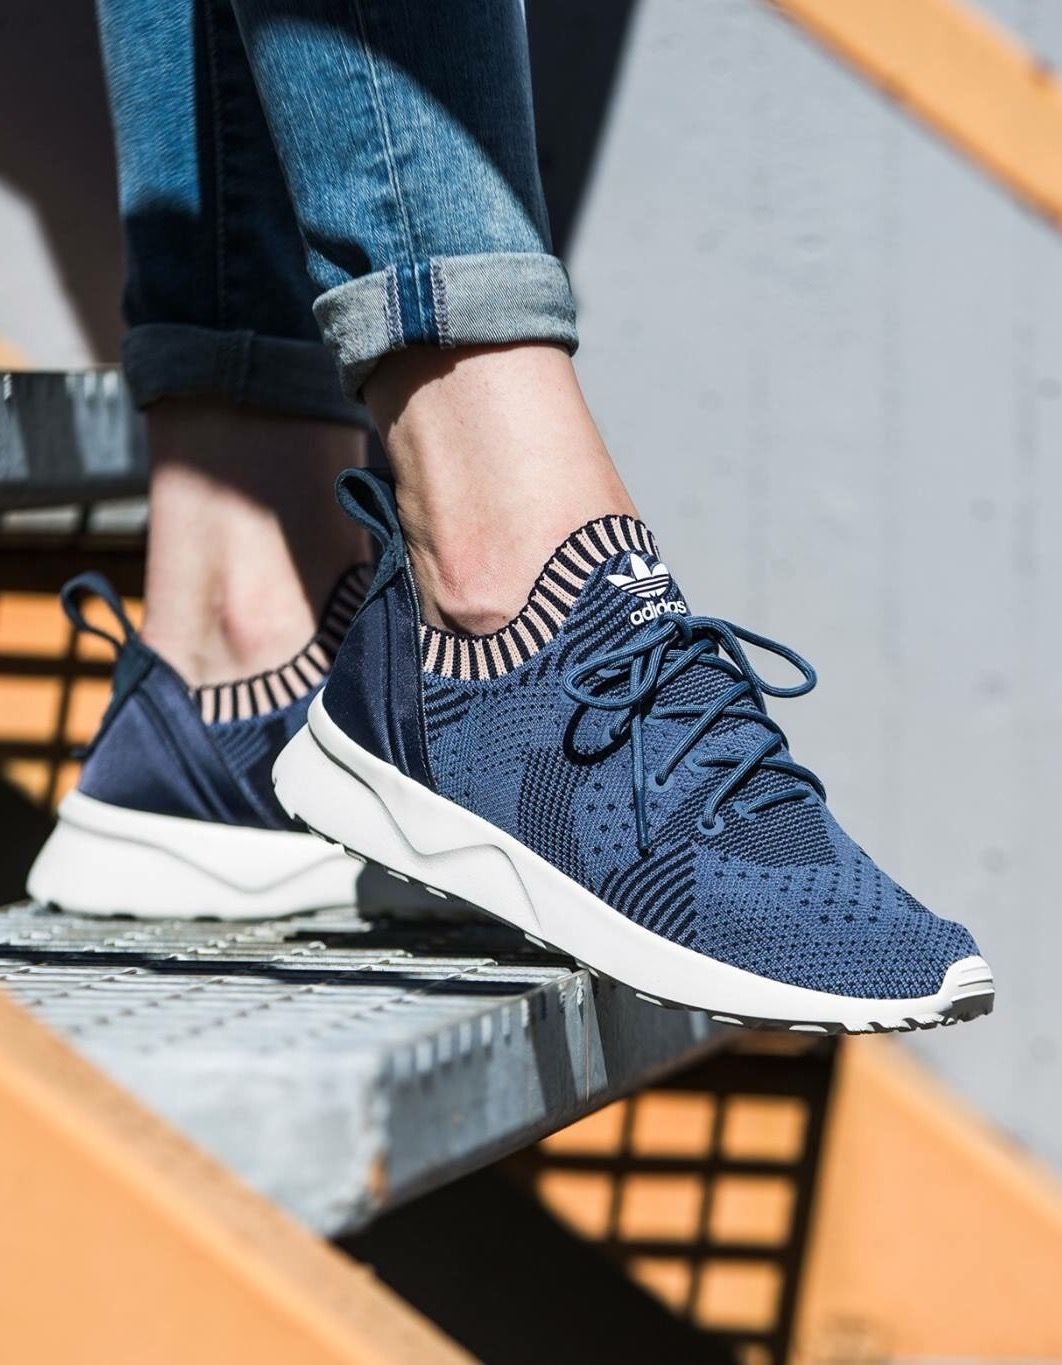 b2535f04014a3 adidas Originals ZX Flux ADV - Adidas Shoes for Woman - amzn.to 2gzvdJS